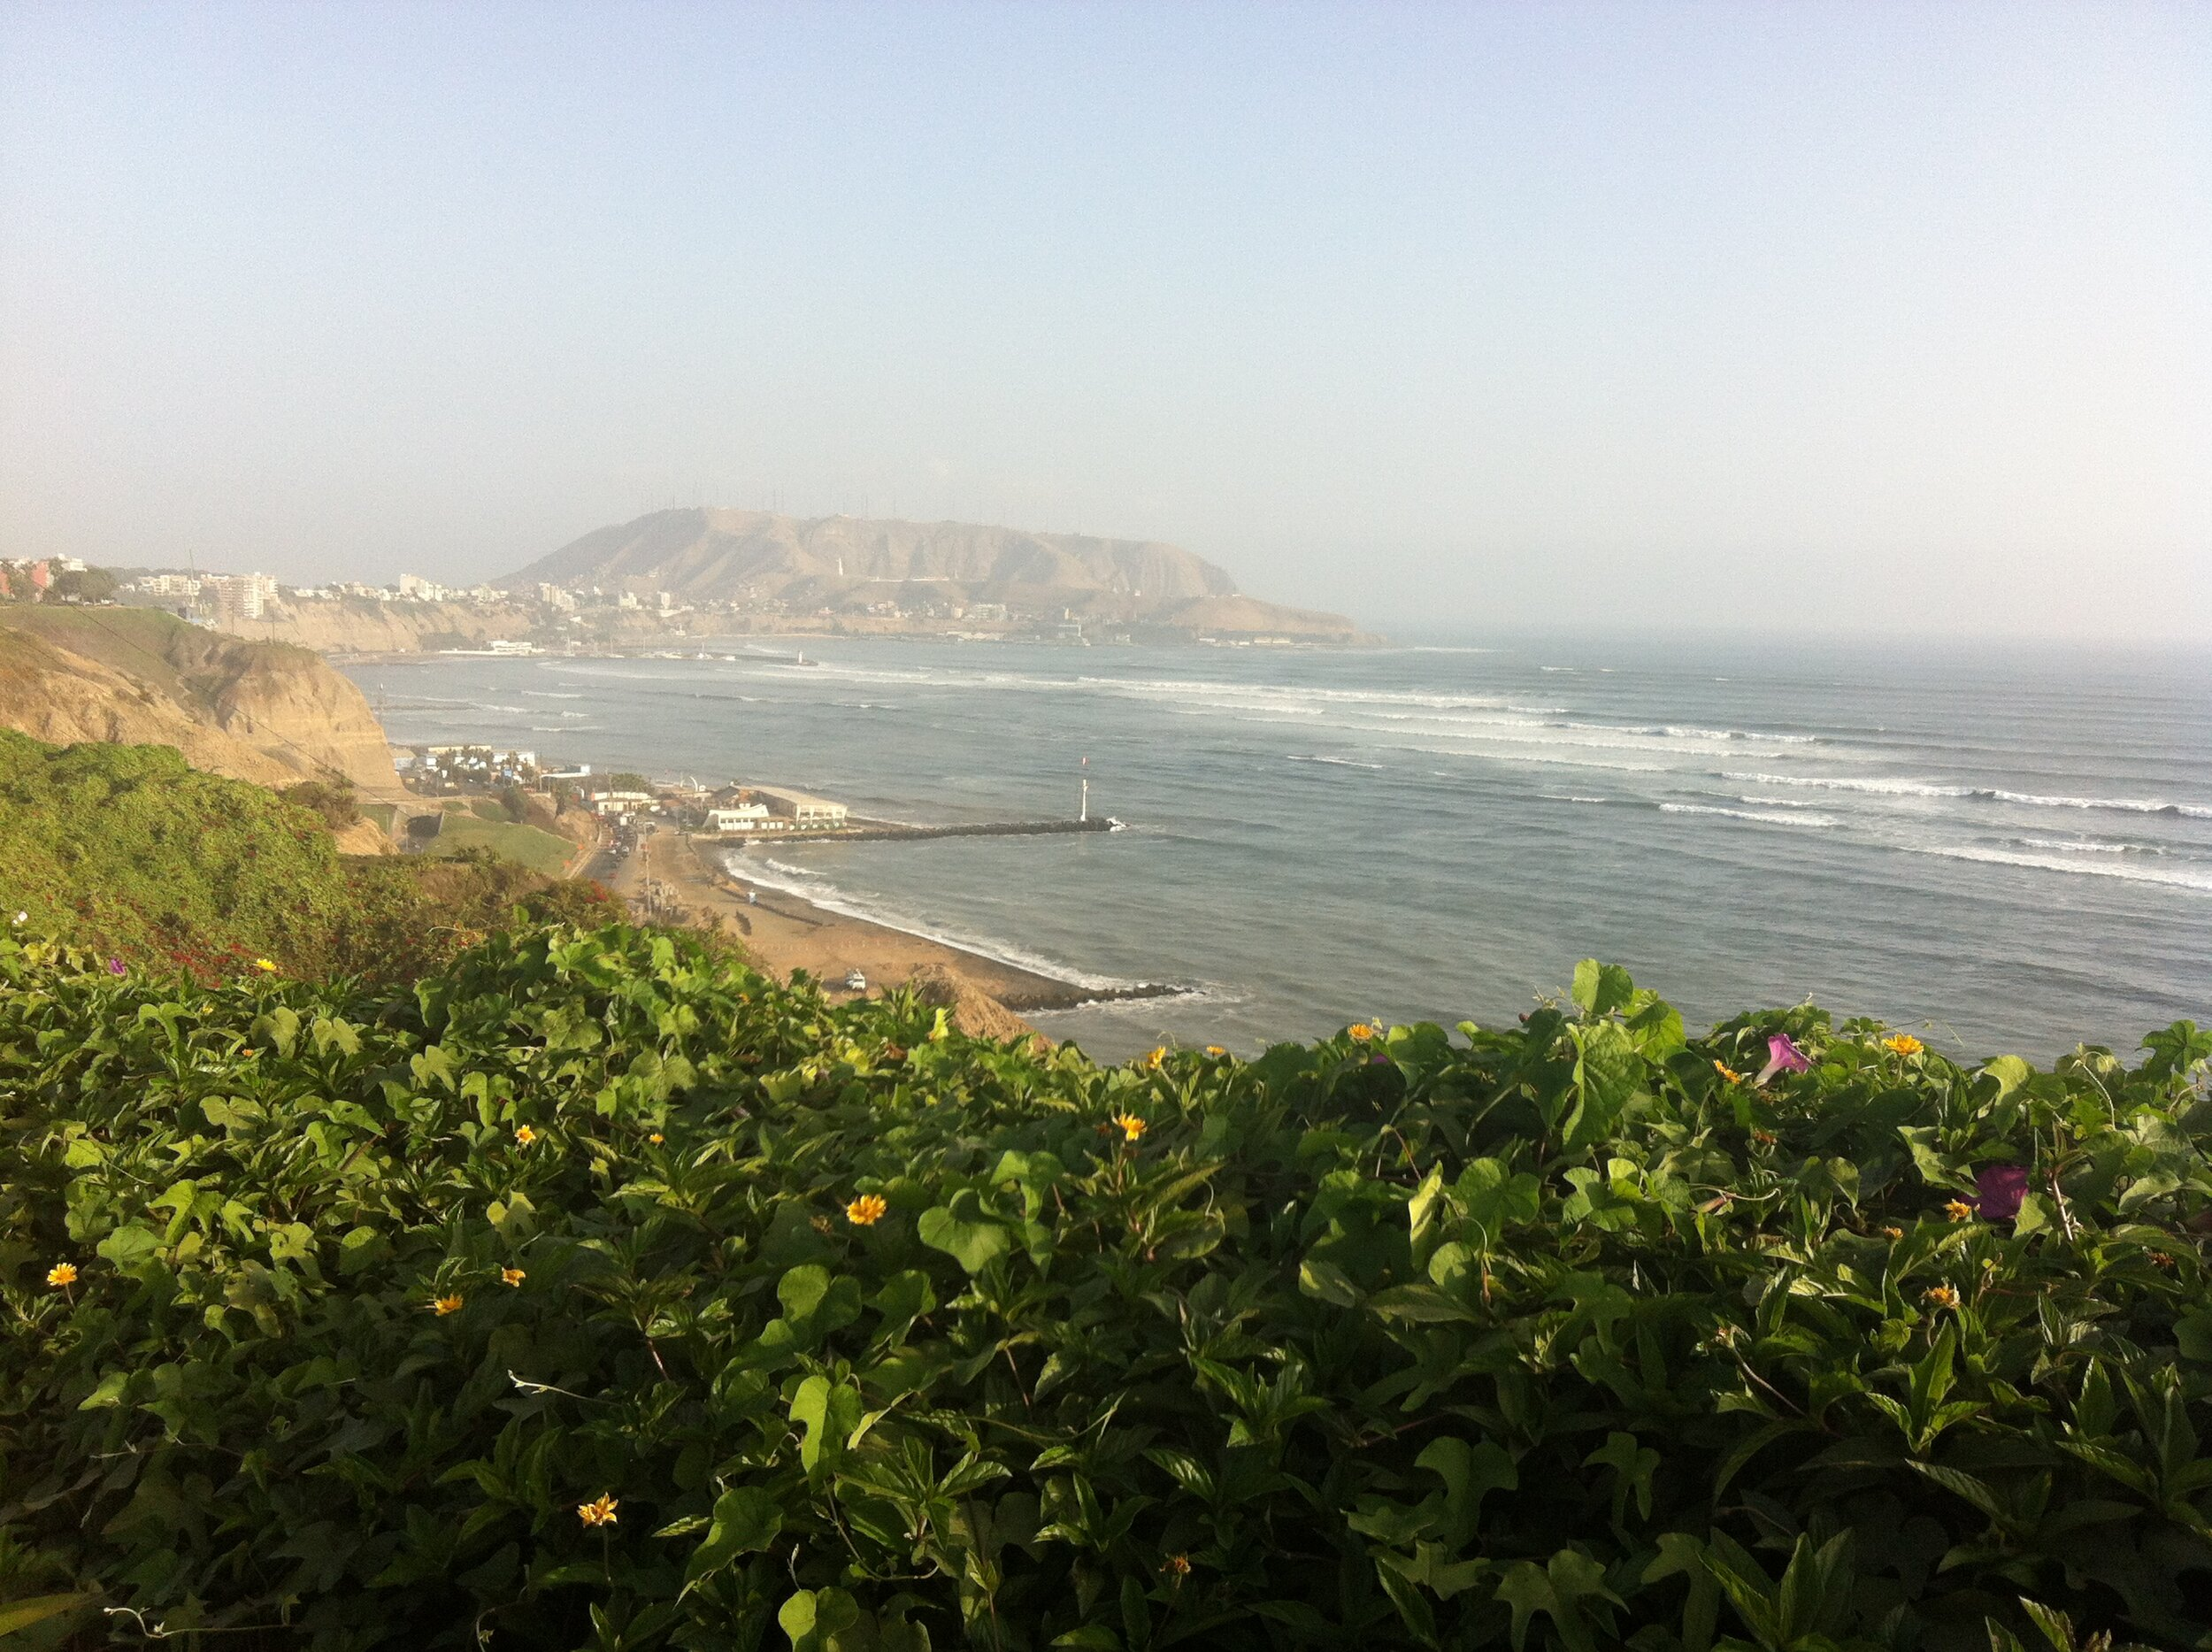 The Pacific Ocean meets the western border of Peru. The nation's capital Lima (pictured here) is by far the most populous city - home to more than 10 million.